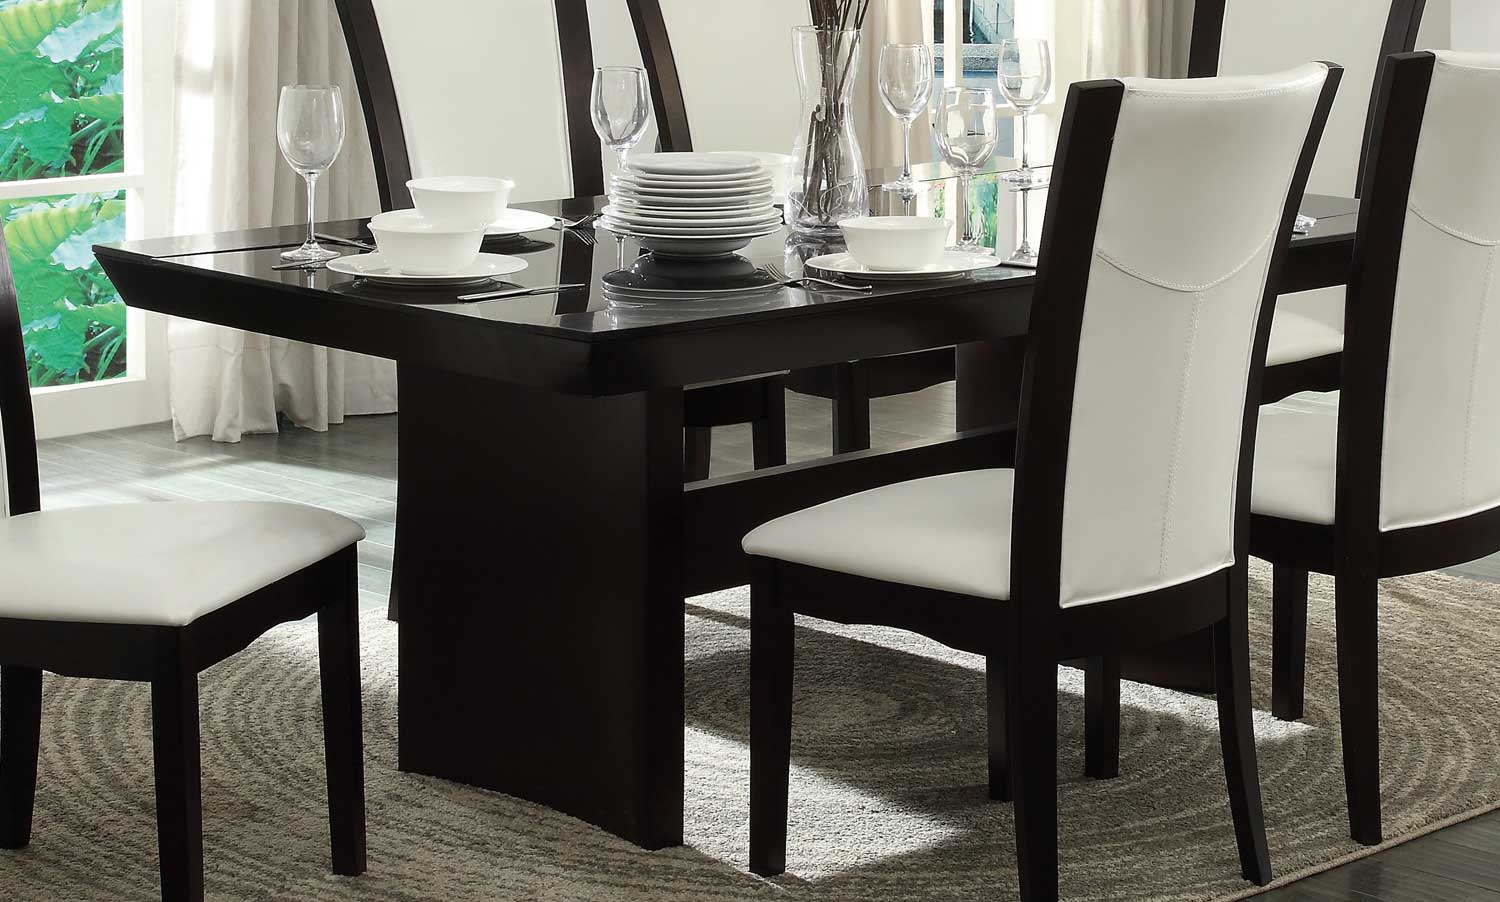 Homelegance Daisy Dining Table with Glass Insert Espresso 71072TR